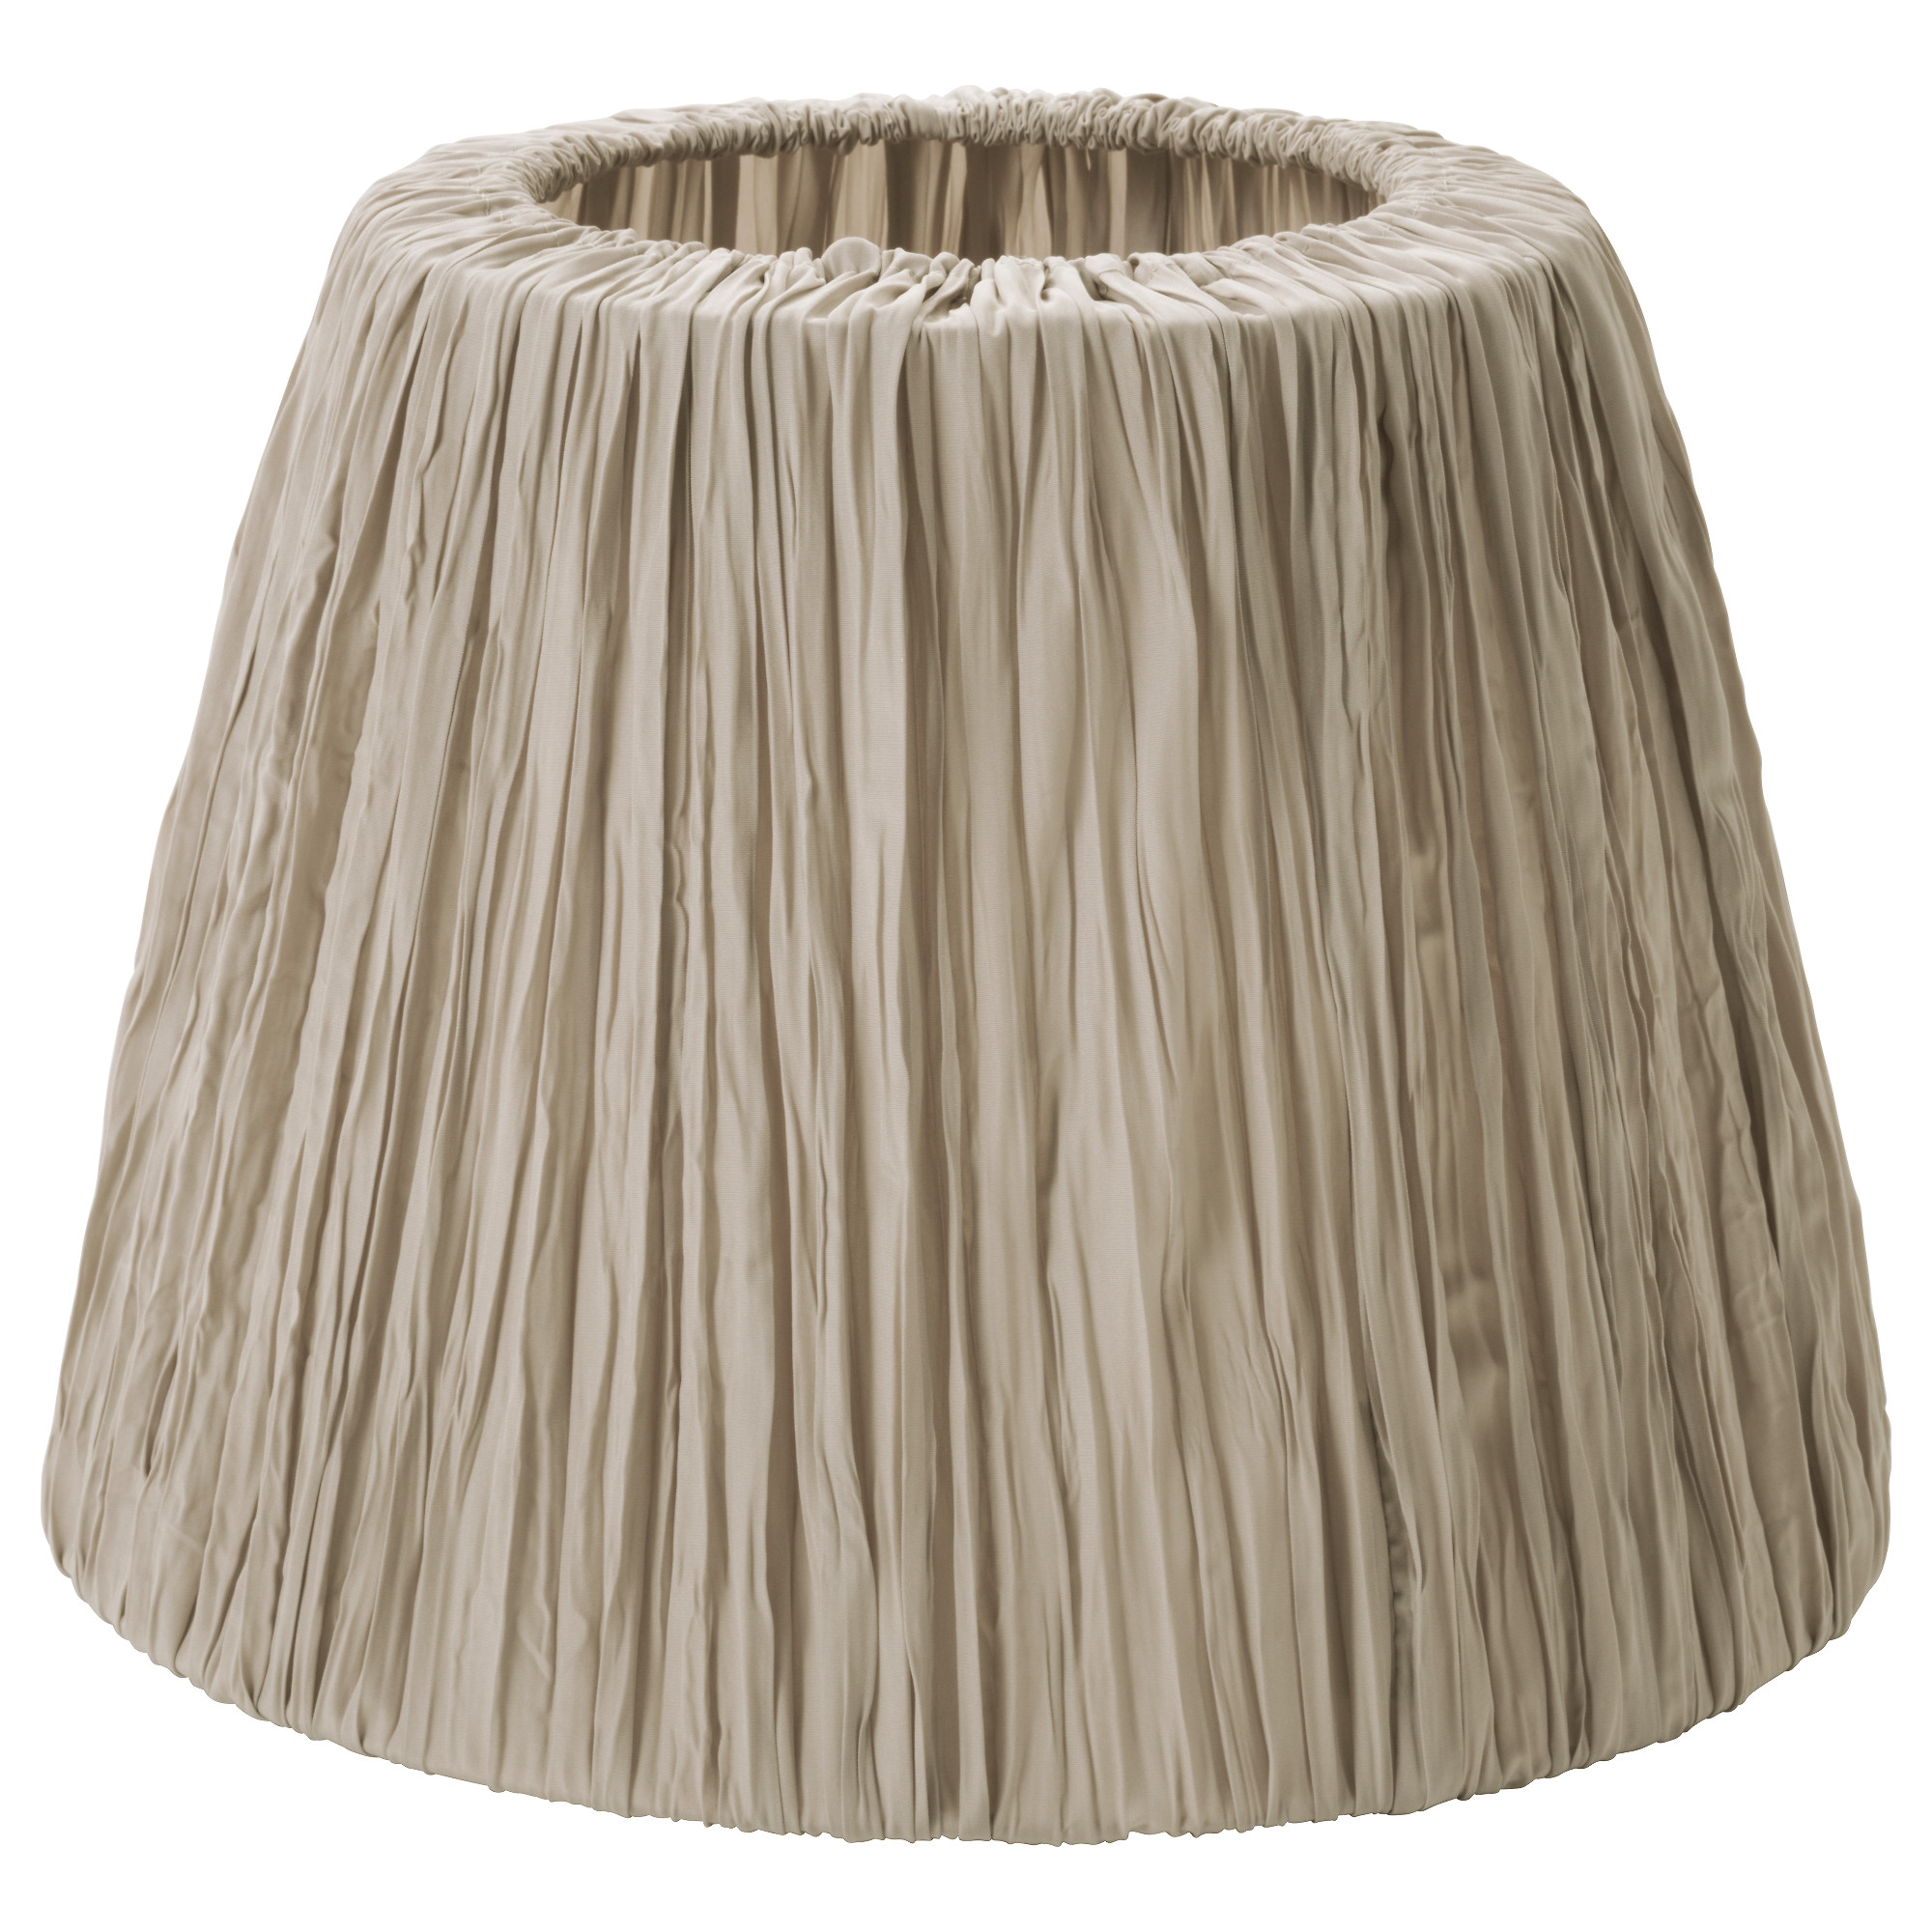 Lamp Shades Ikea Inside Clip On Drum Chandelier Shades (Image 21 of 25)